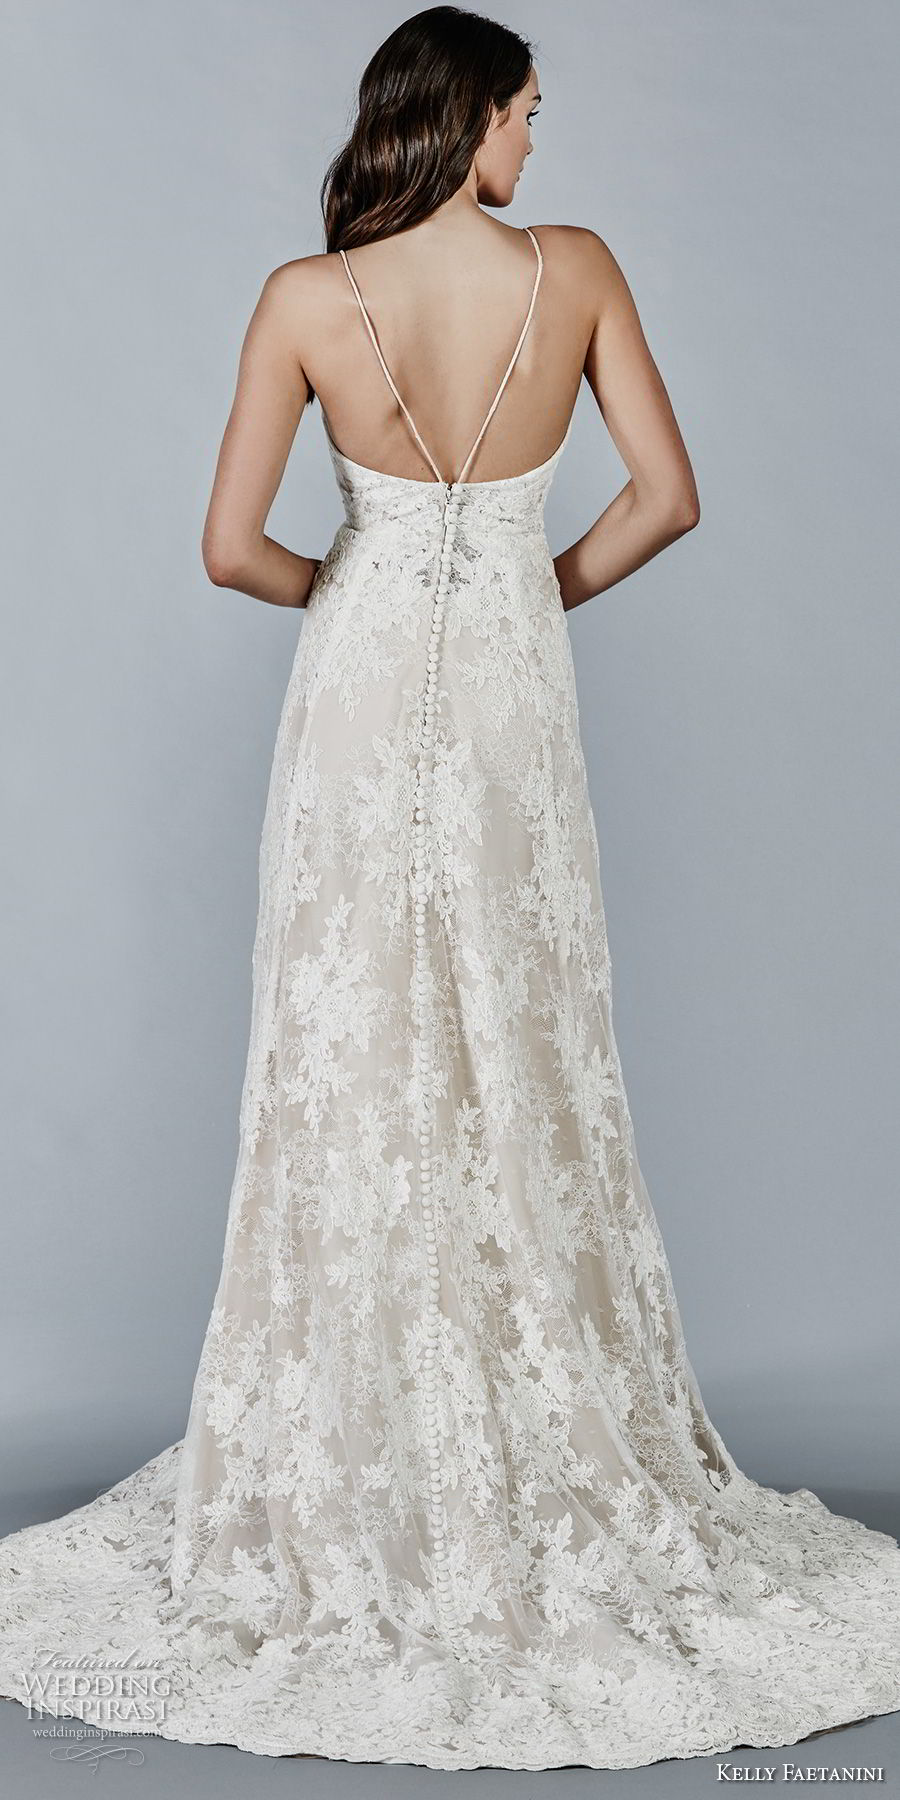 kelly faetanini fall 2018 bridal spaghetti strap v neck full lace embellishment elegant romantic modified a line wedding dress open back sweep train (9) bv